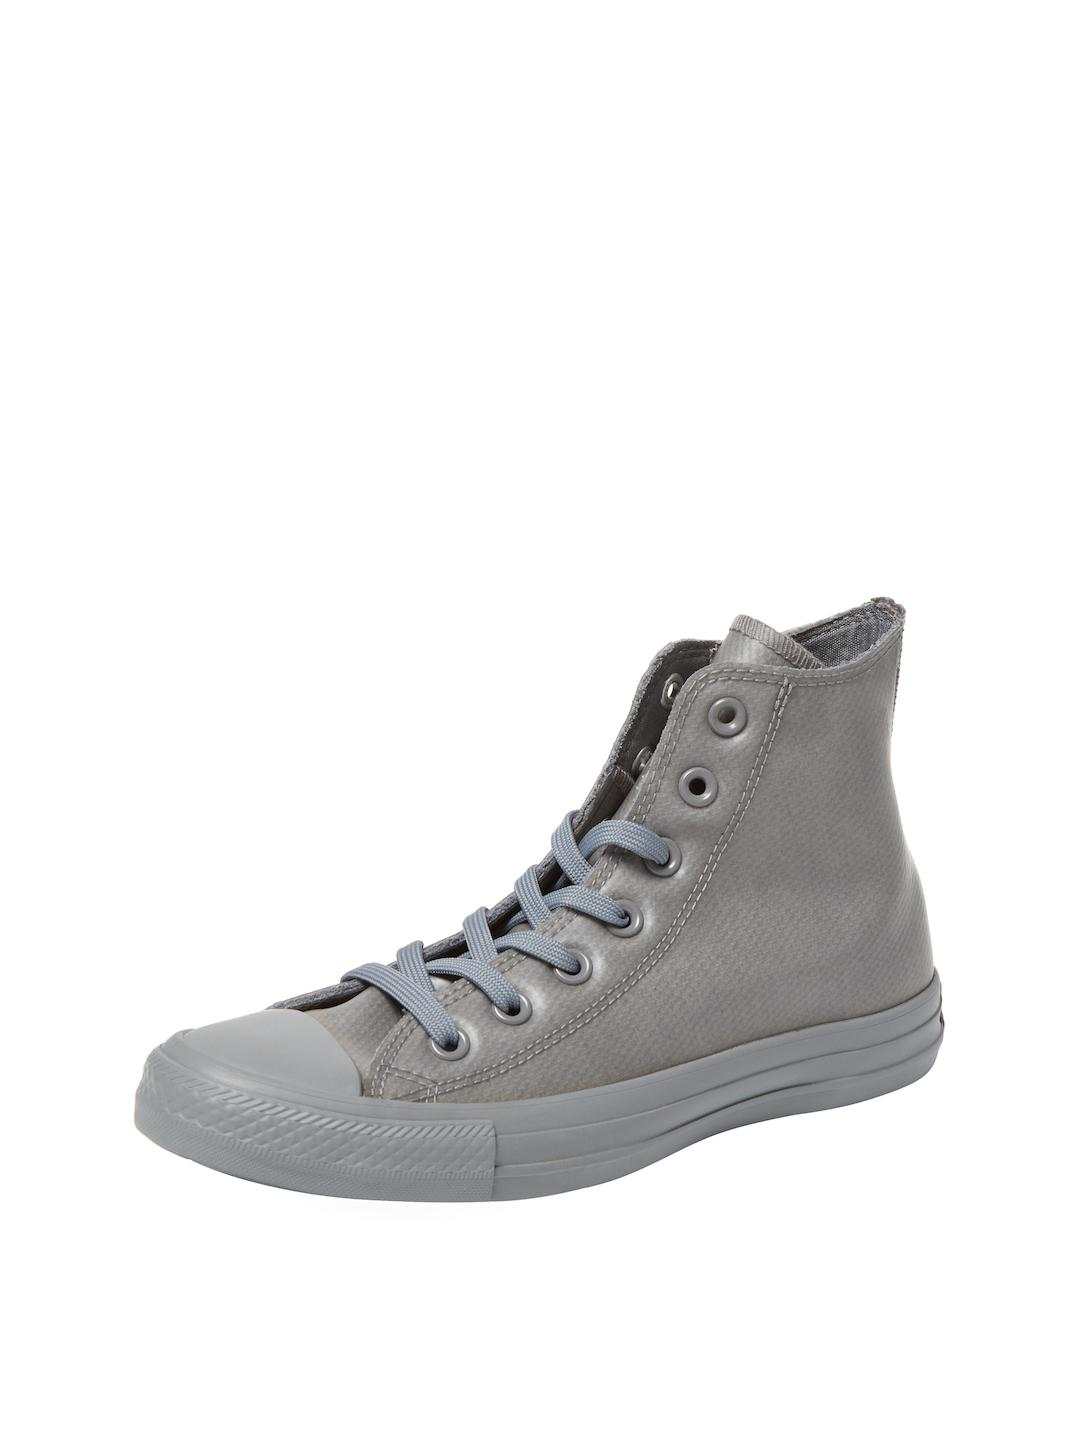 5324763ee08957 Gallery. Previously sold at  Gilt · Women s Converse Chuck Taylor ...